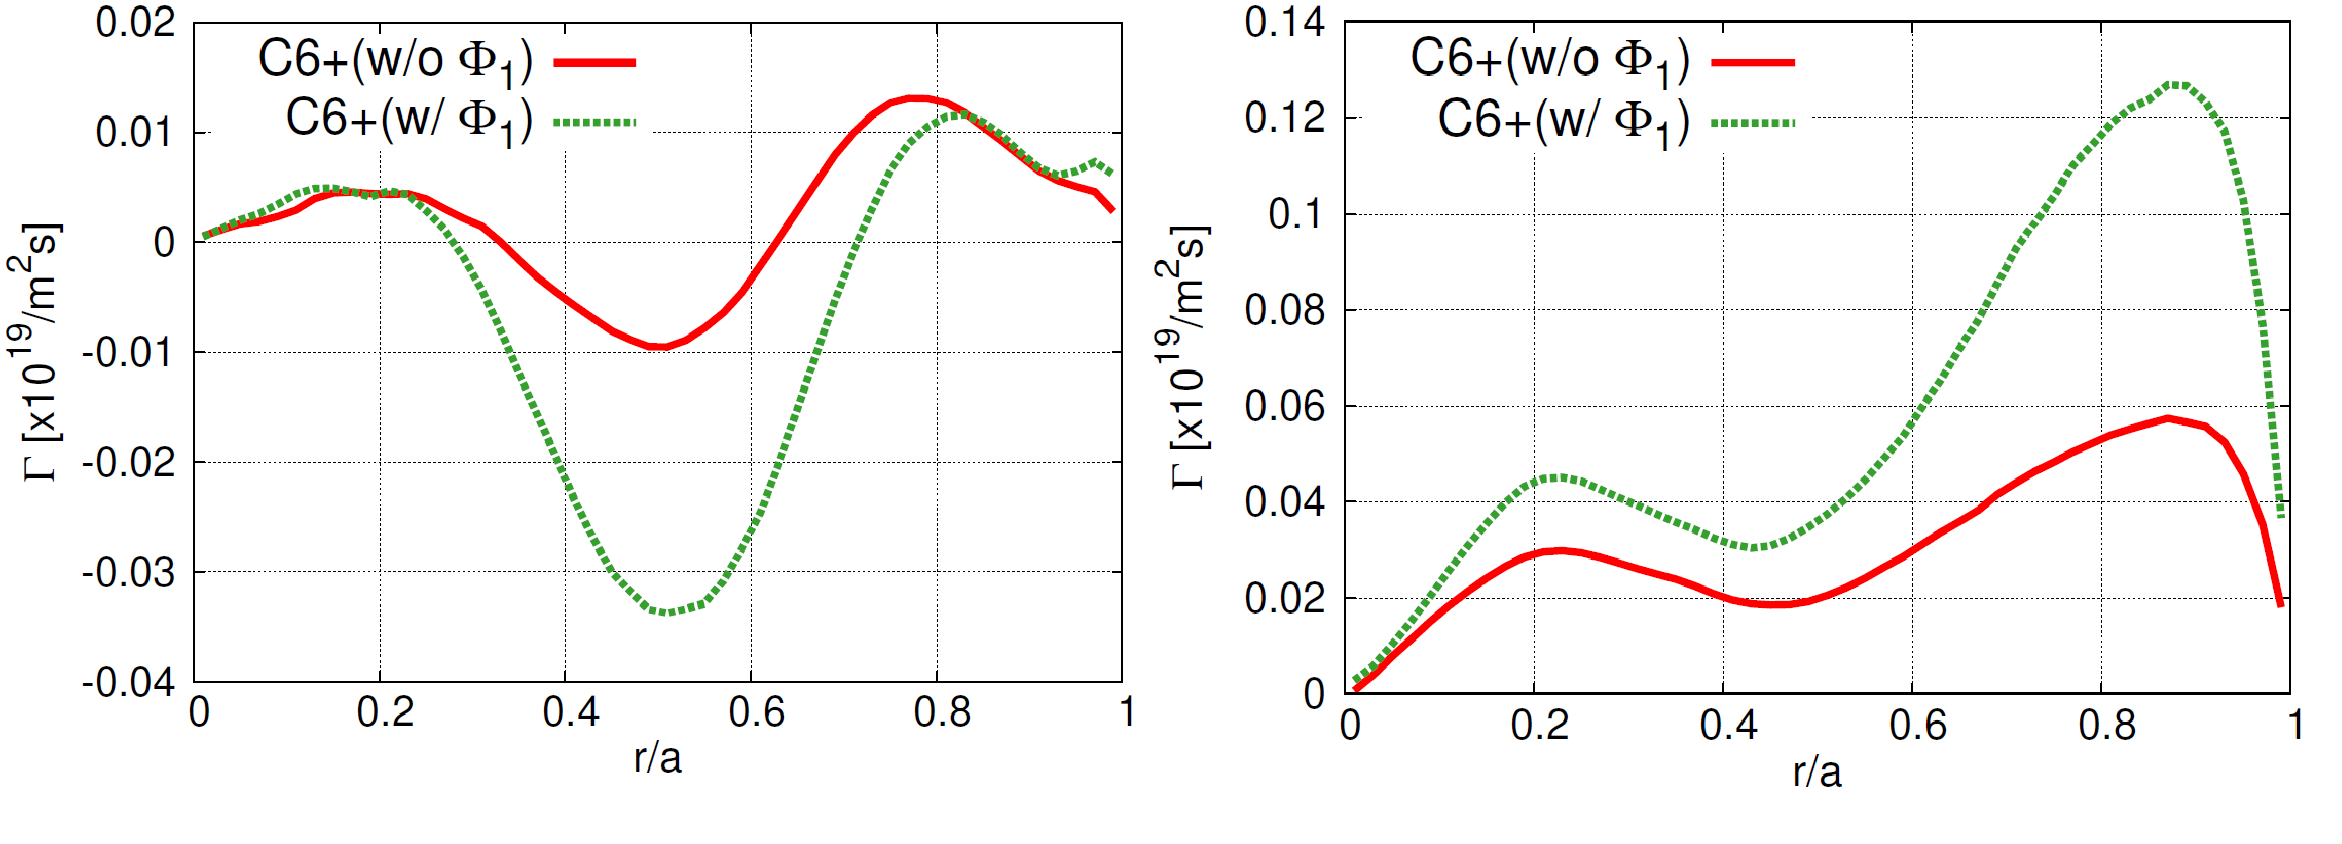 Radial carbon particle fluxes for the ion-root case (left) and the electron-root case (right). The red lines represent the results without $\Phi_1$ and the green lines the results with $\Phi_1$.